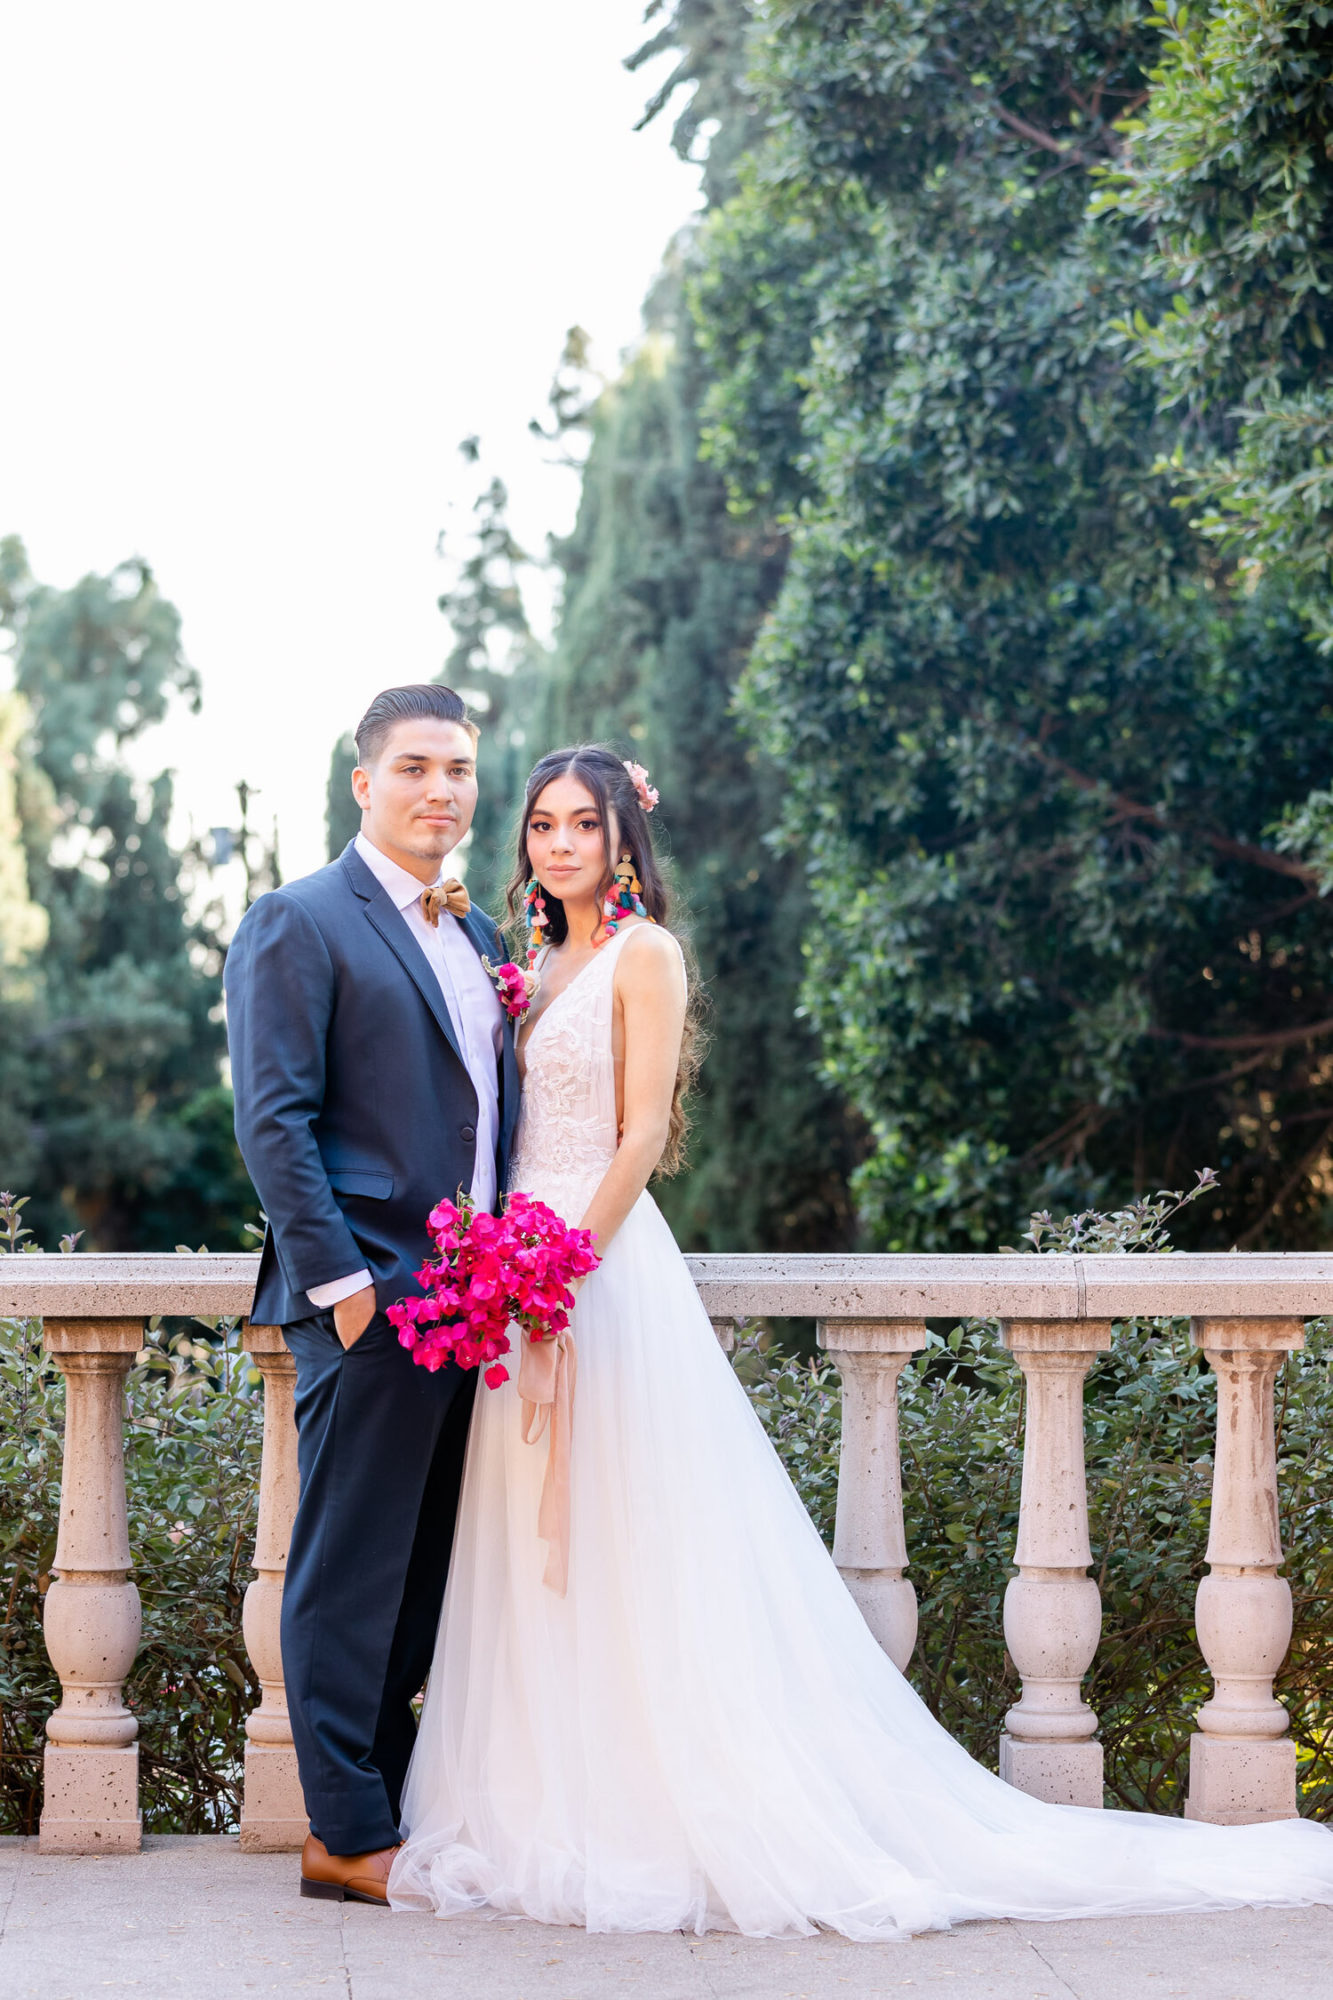 h & l lovely creations bespoke weddings southern california colourful 00026